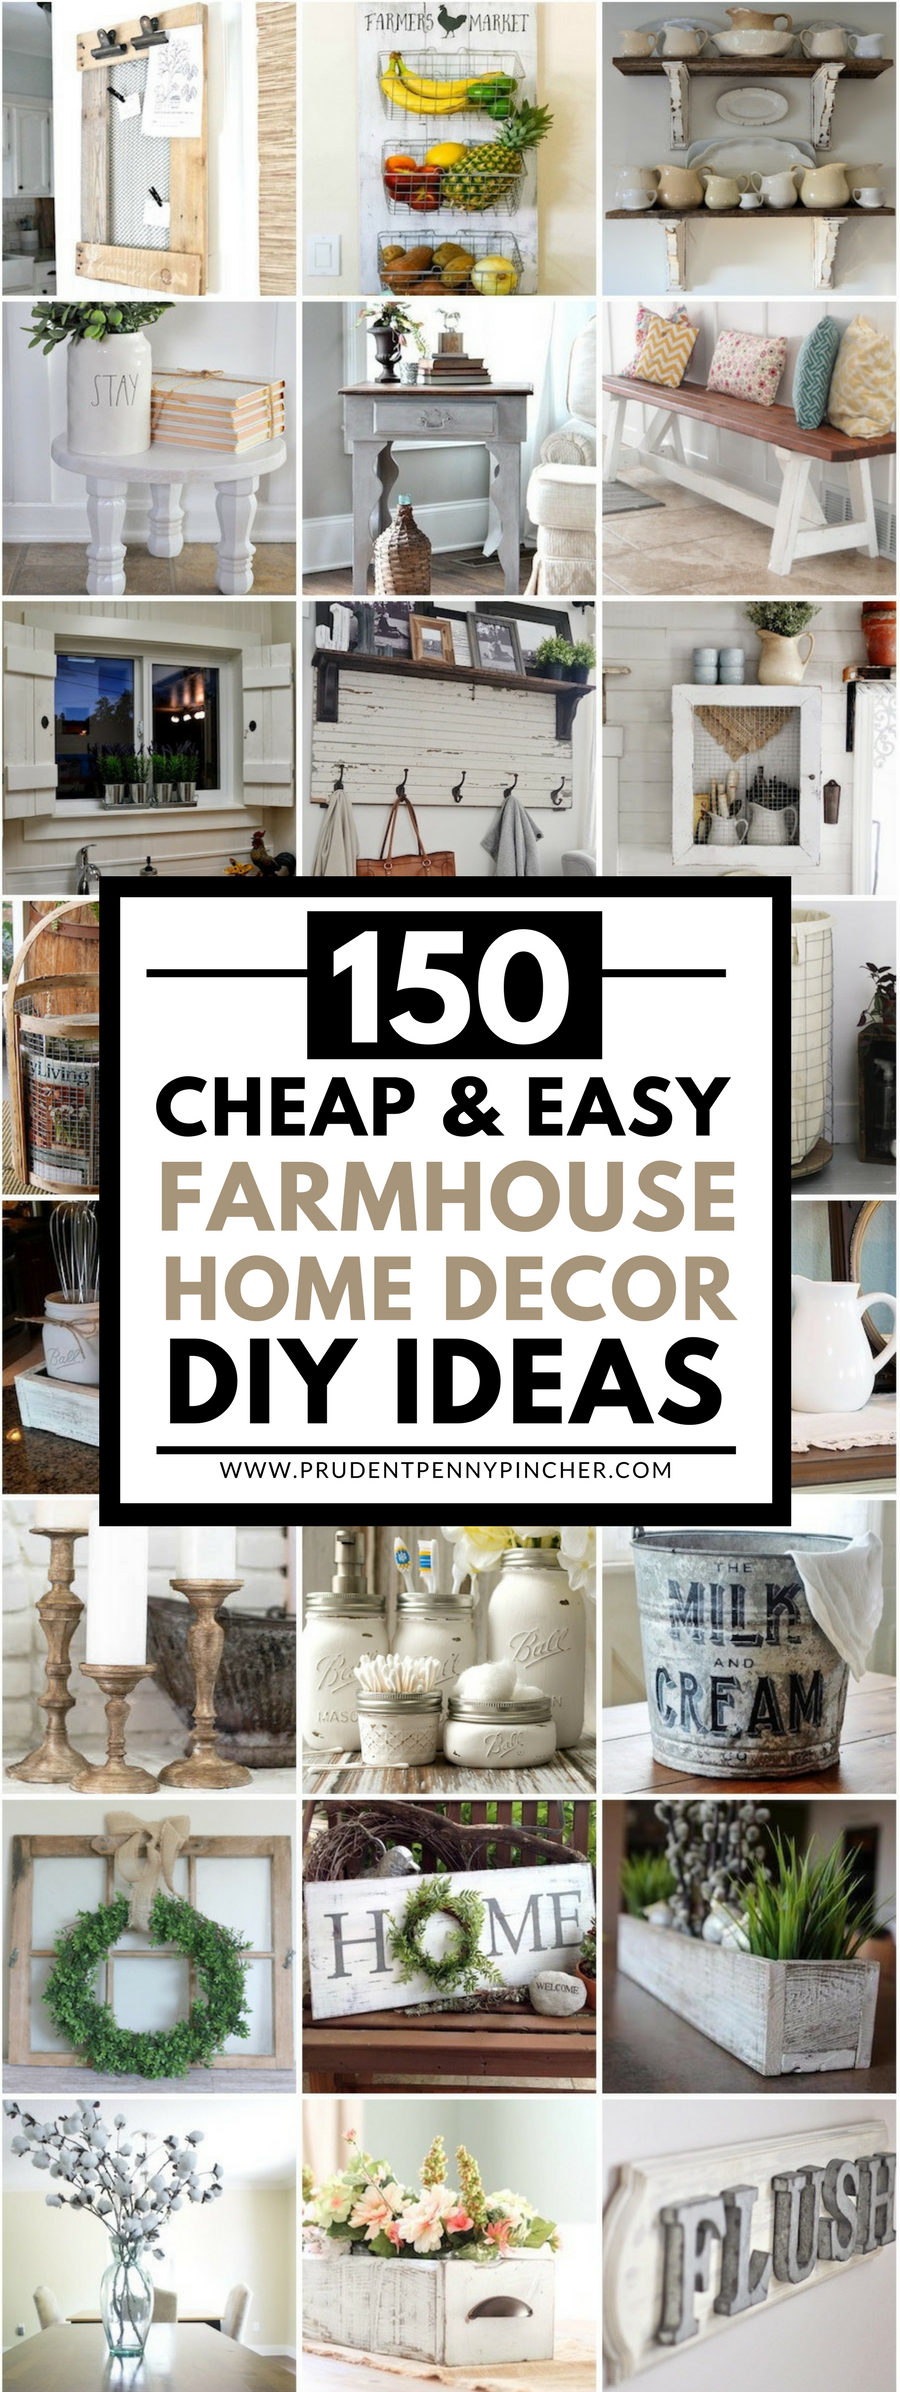 150 cheap and easy diy farmhouse style home decor ideas diy high style decor on the cheap oh my creative